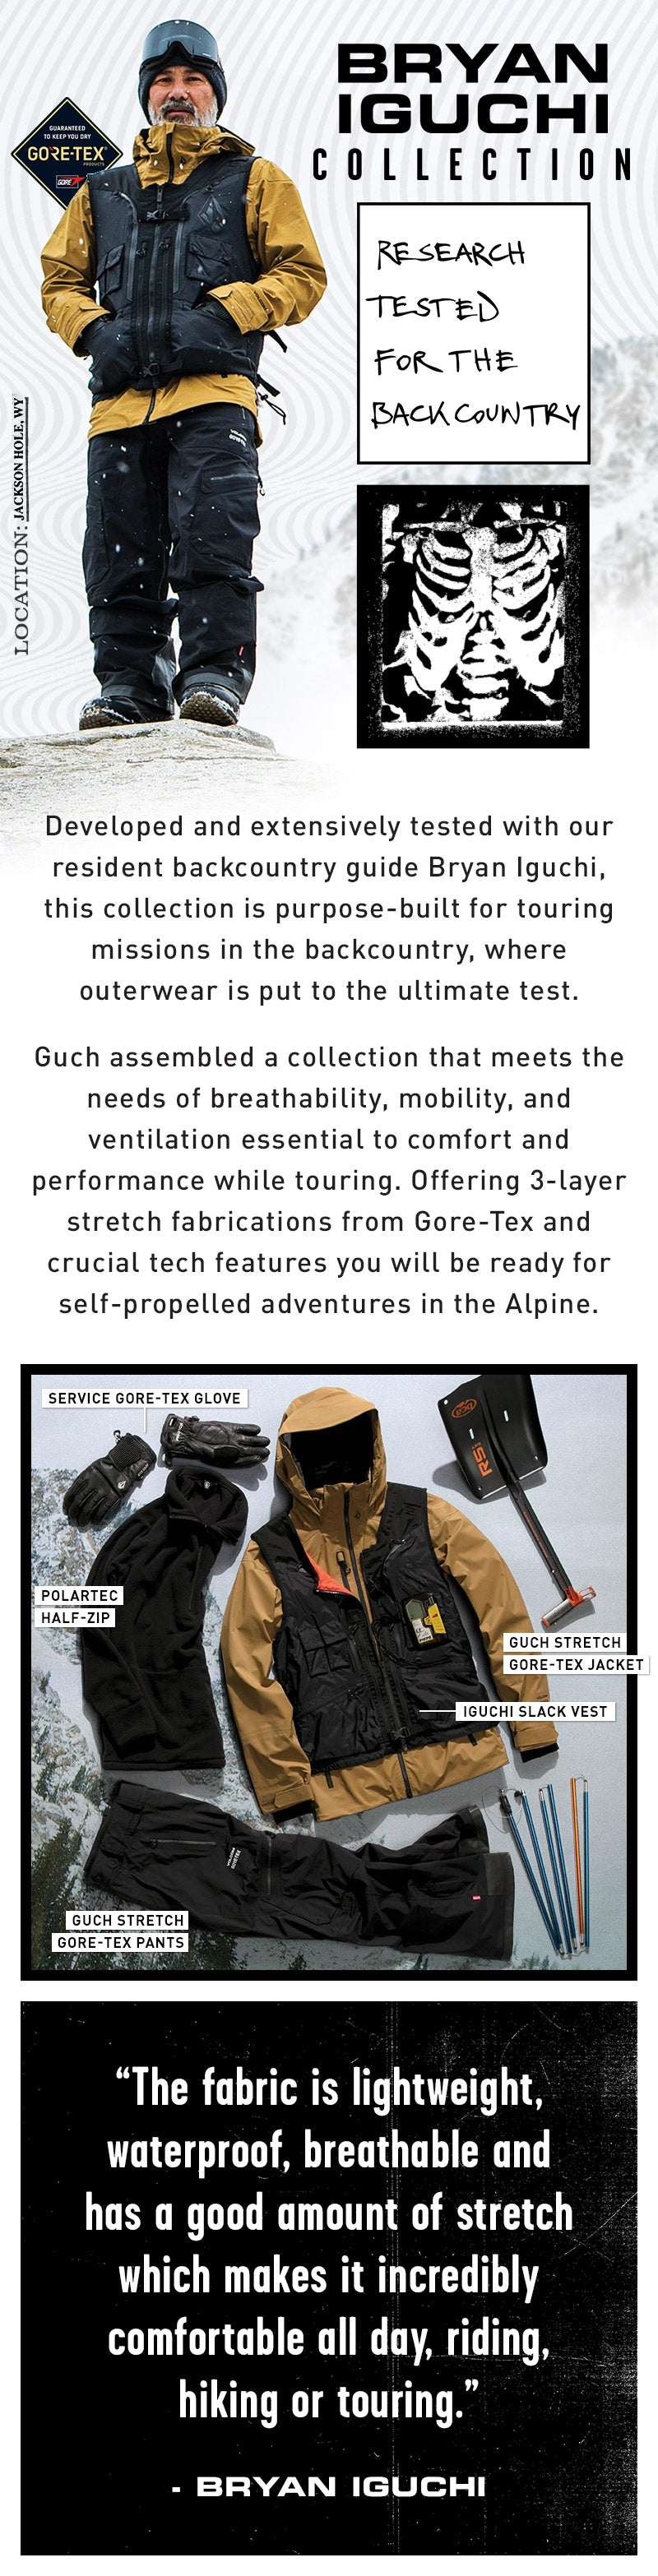 bryan iguchi collection research tested for the backcountry